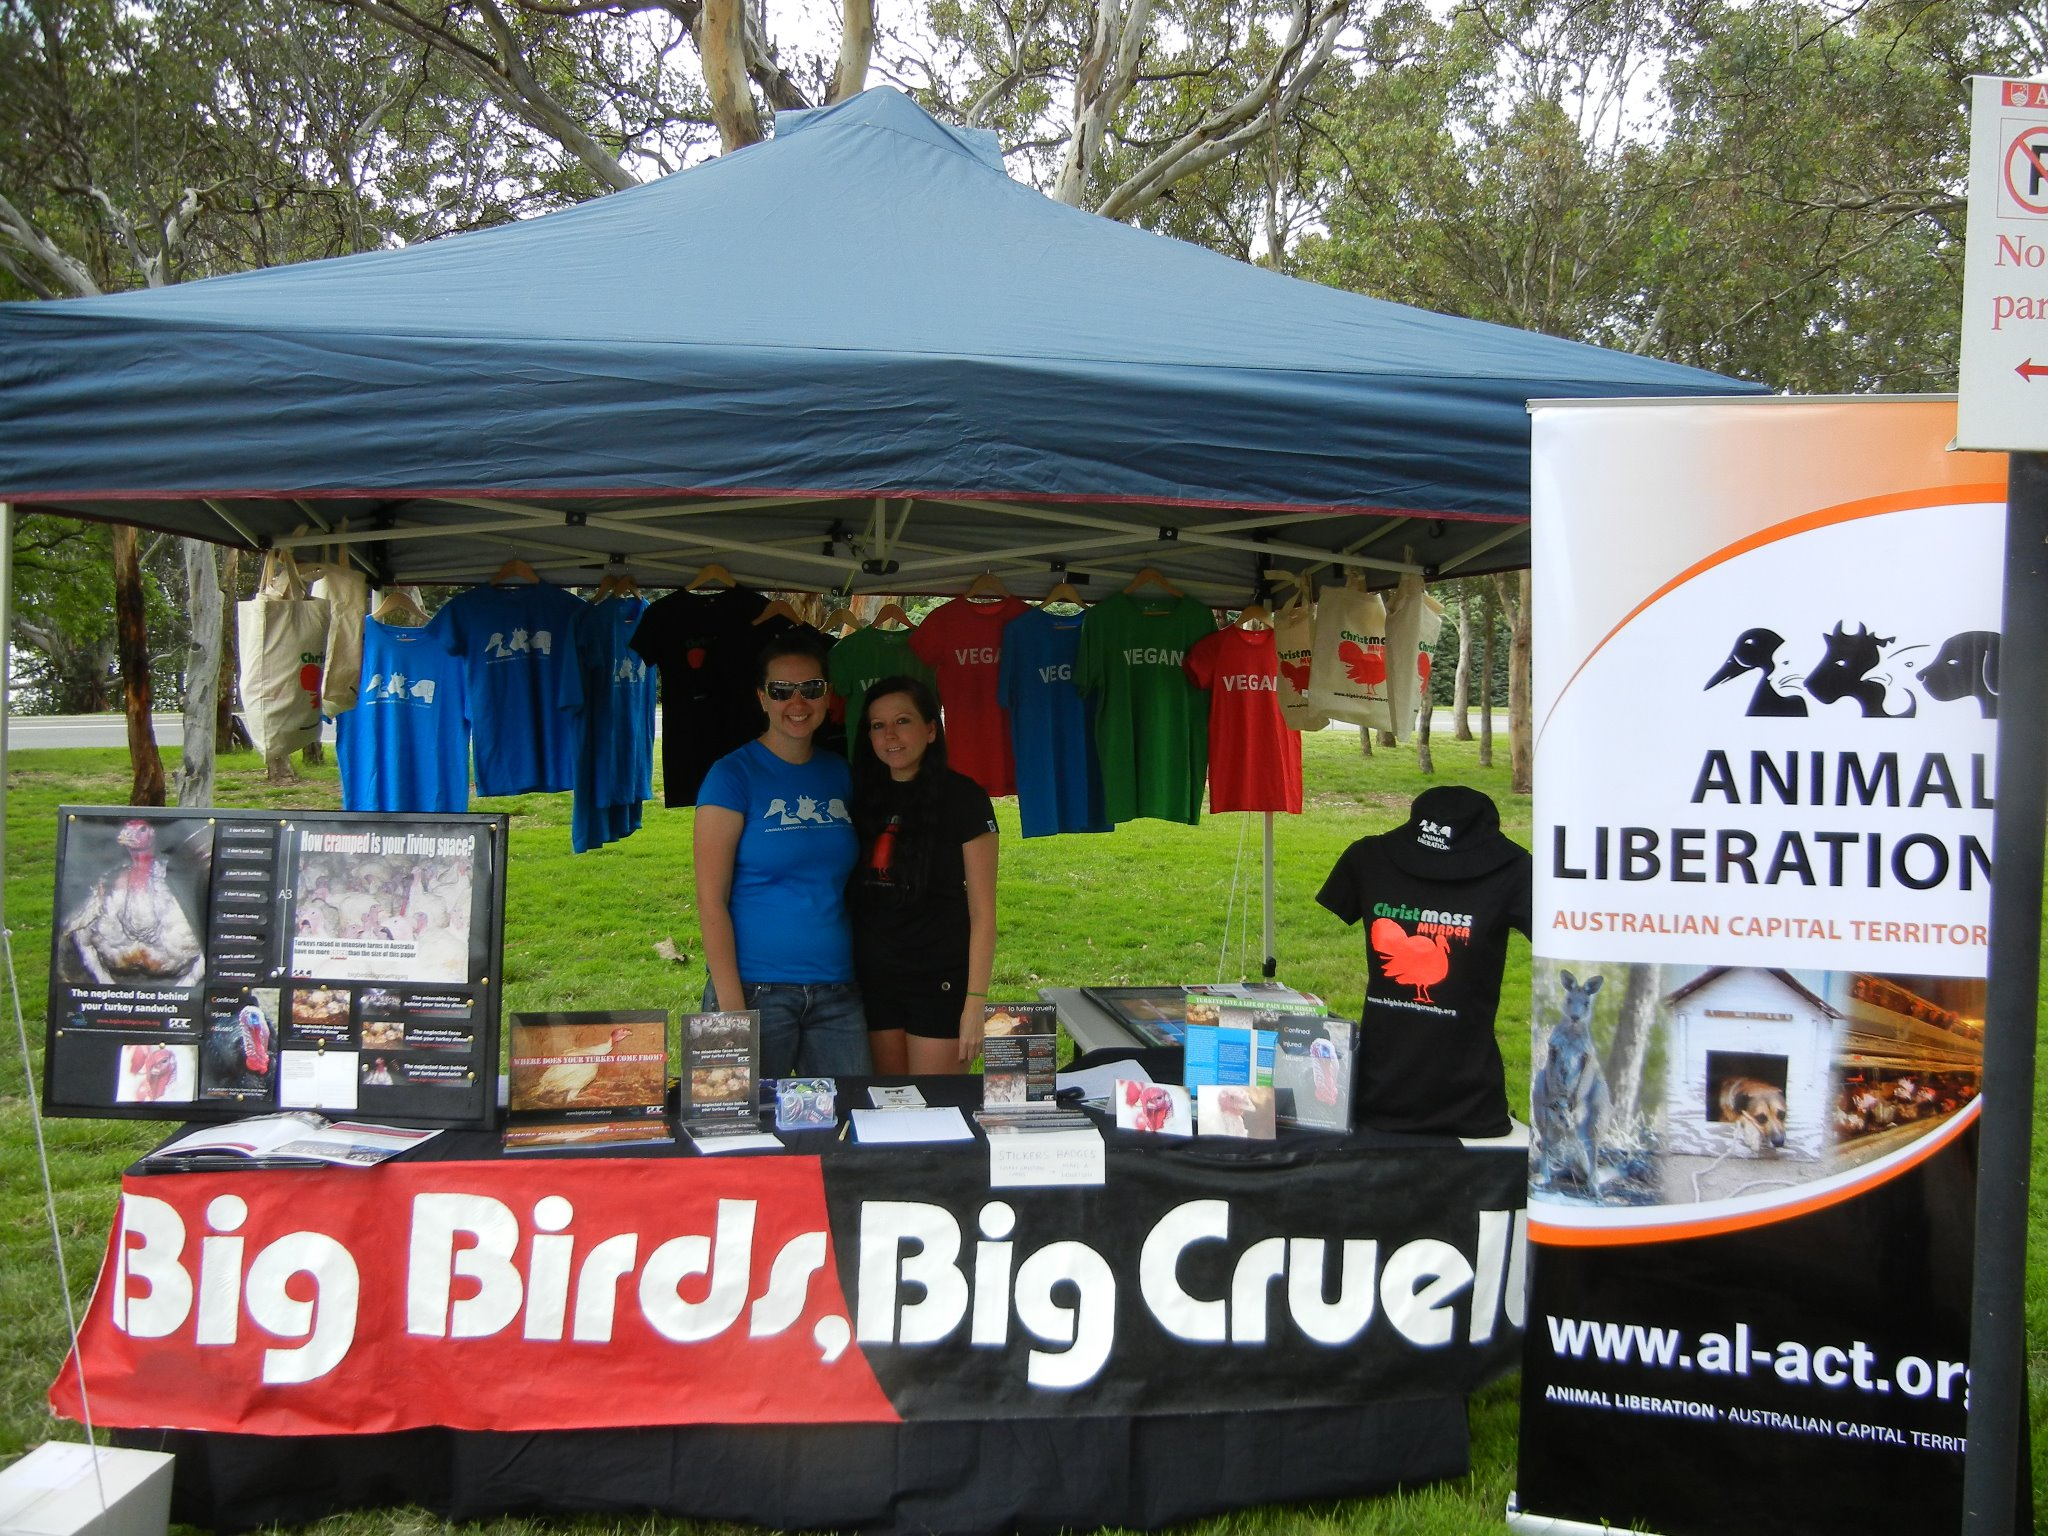 BBBC stall